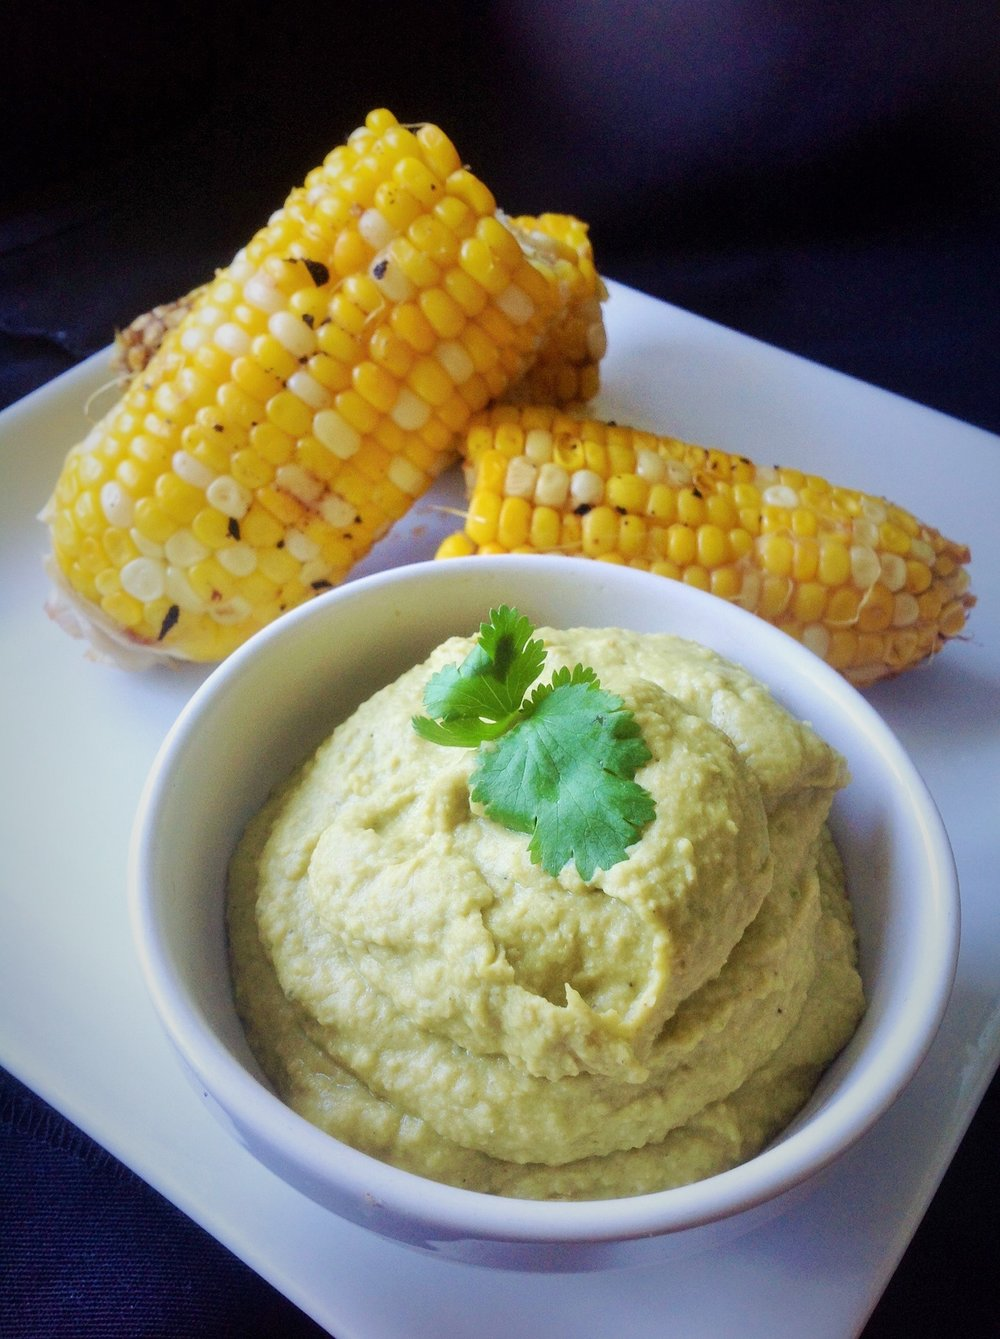 Poblano Hummus - Healthy, Gluten-Free, Oil-Free, Creamy, Spicy, Mexican Vegan Dip Recipe